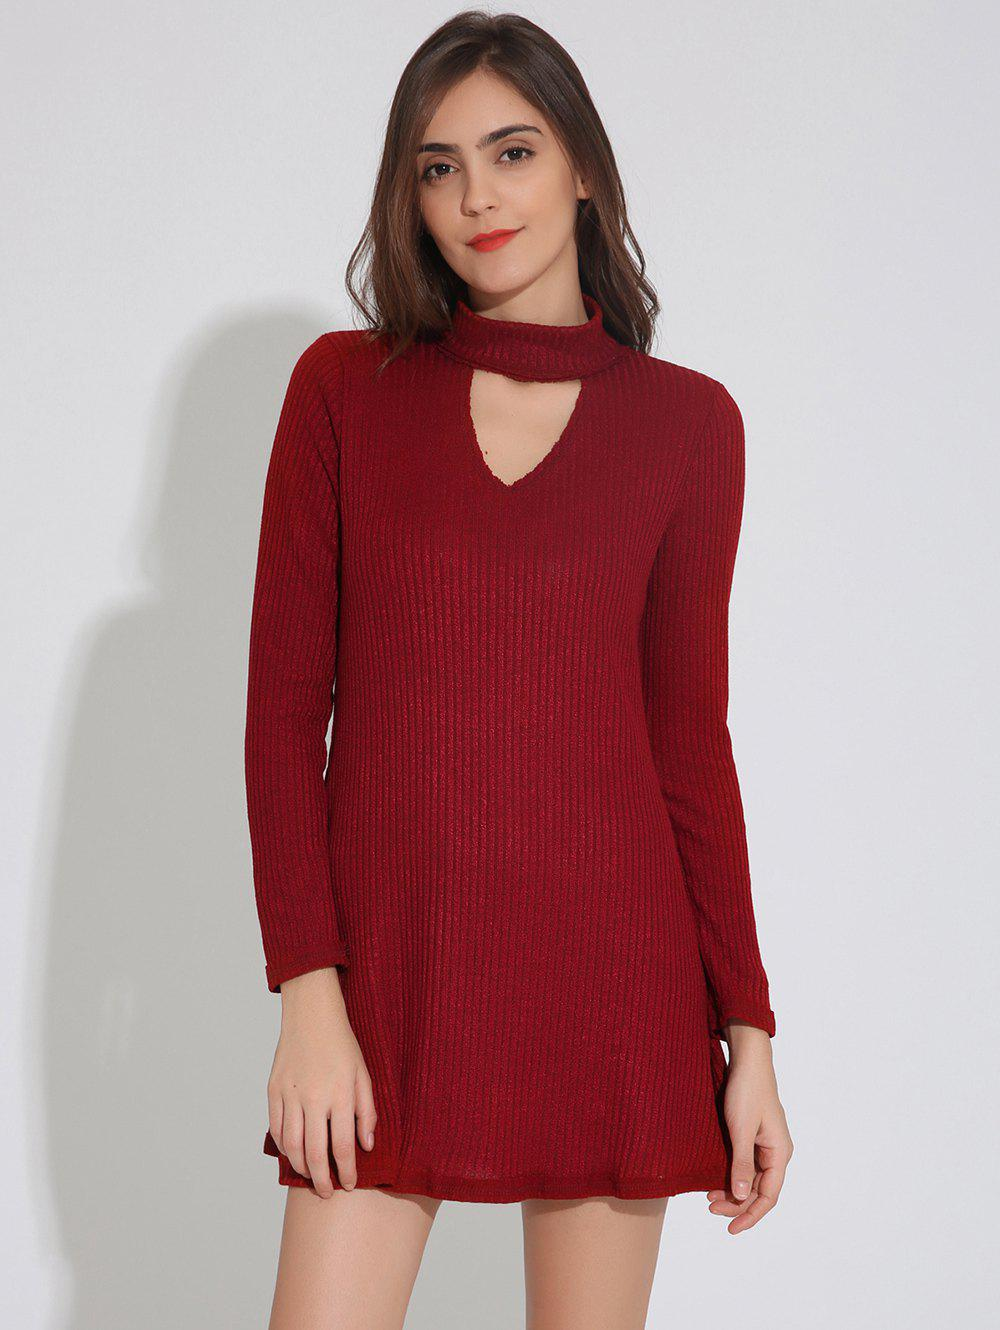 Keyhole Neck Long Sleeve Skater Sweater Dress - WINE RED L